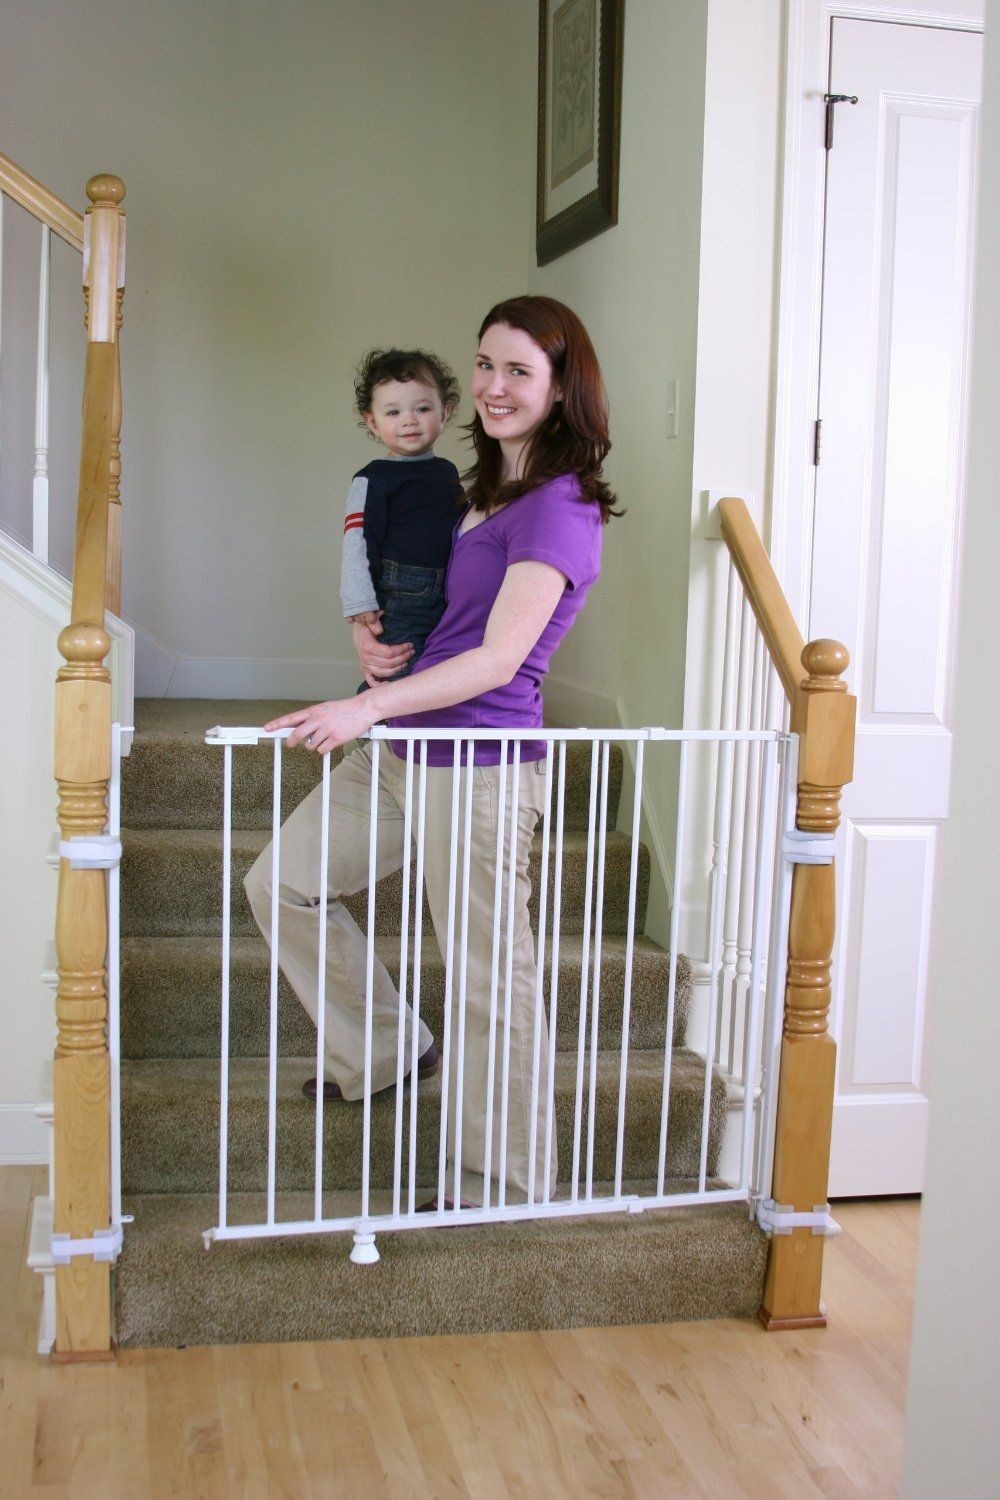 Best Baby Gates For Stairs With Banisters